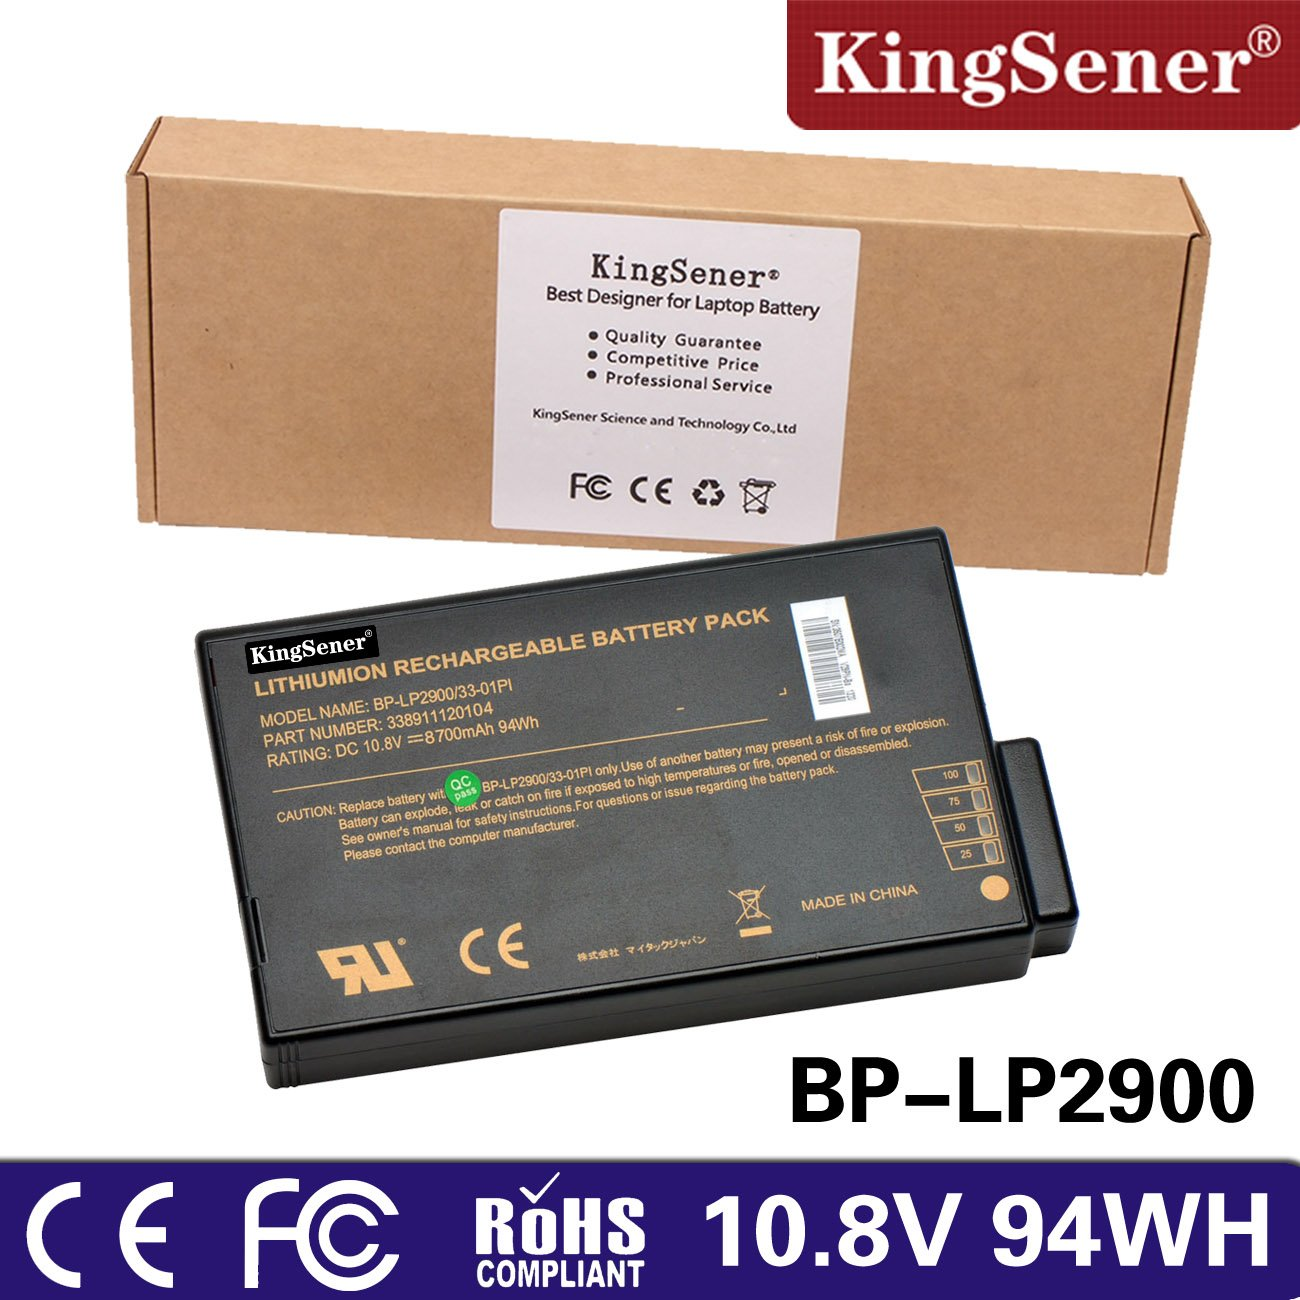 KingSener 8700mAh Laptop Battery for Getac X500 V100 V1010 V200 S400 BP-LP2900/33-01PI 338911120104 BP-LC2600/33-01S1 with Free 2 Years Warrant